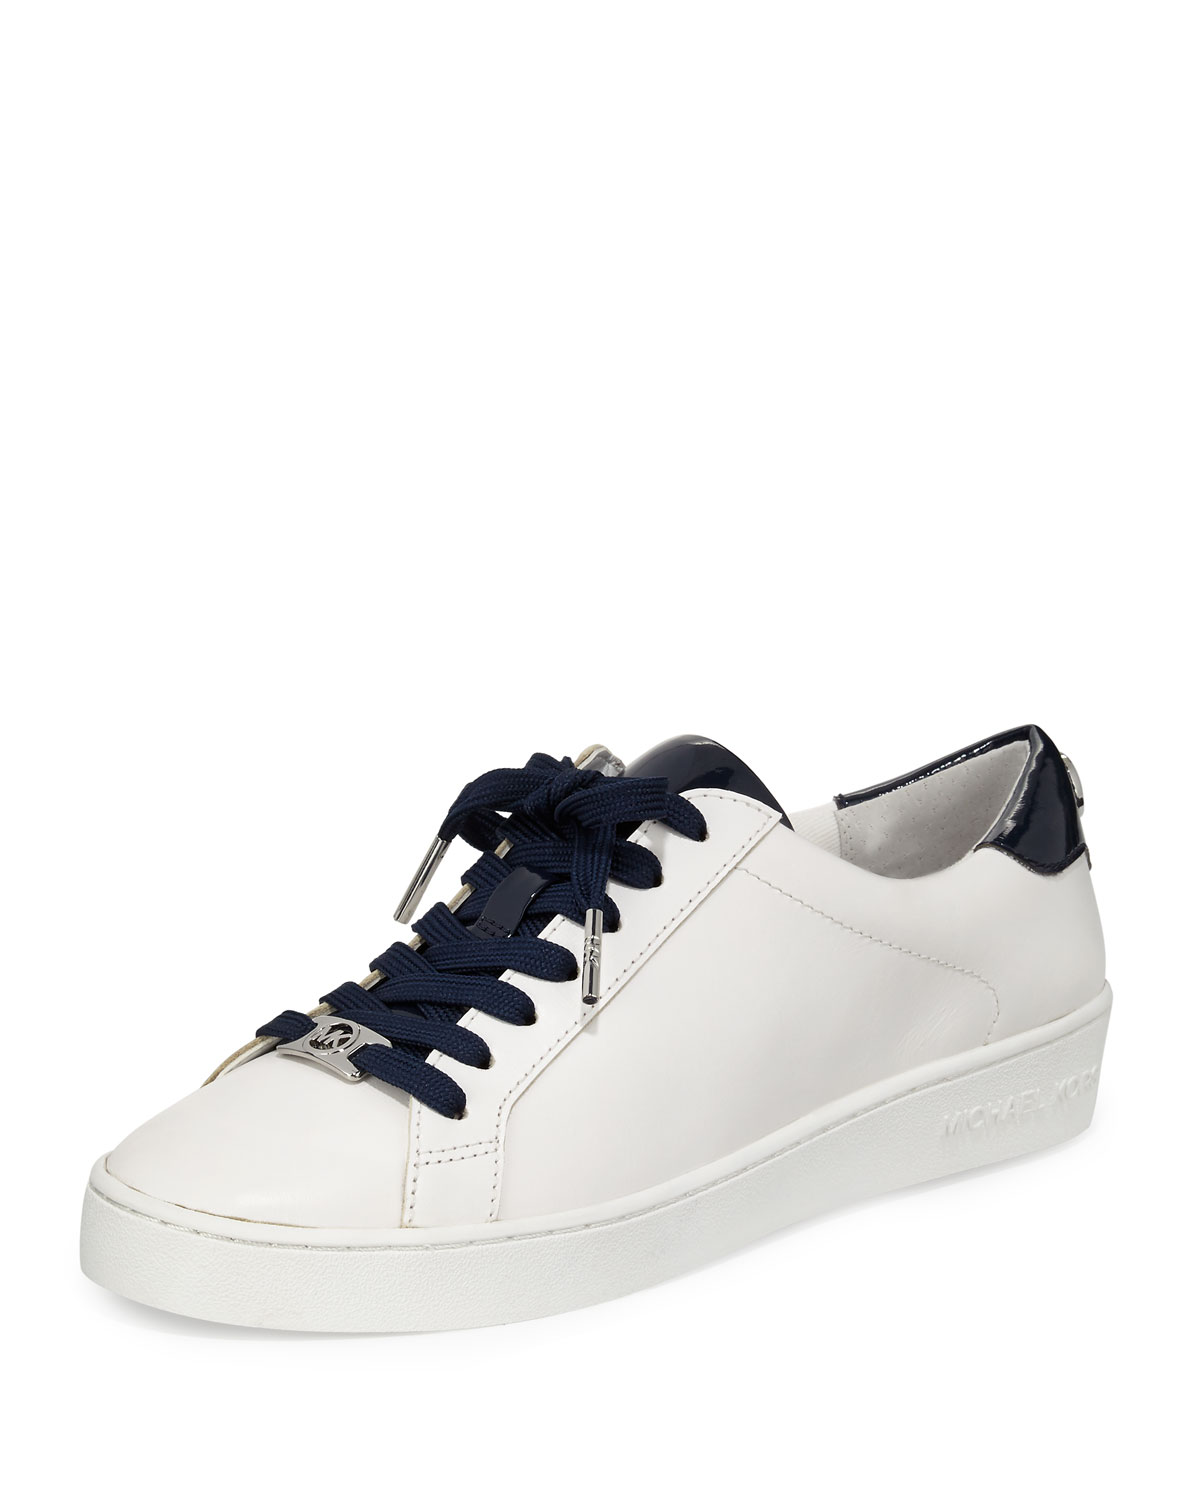 64cb2723a583 MICHAEL Michael Kors Irving Leather Lace-Up Sneaker, Optic White/Navy